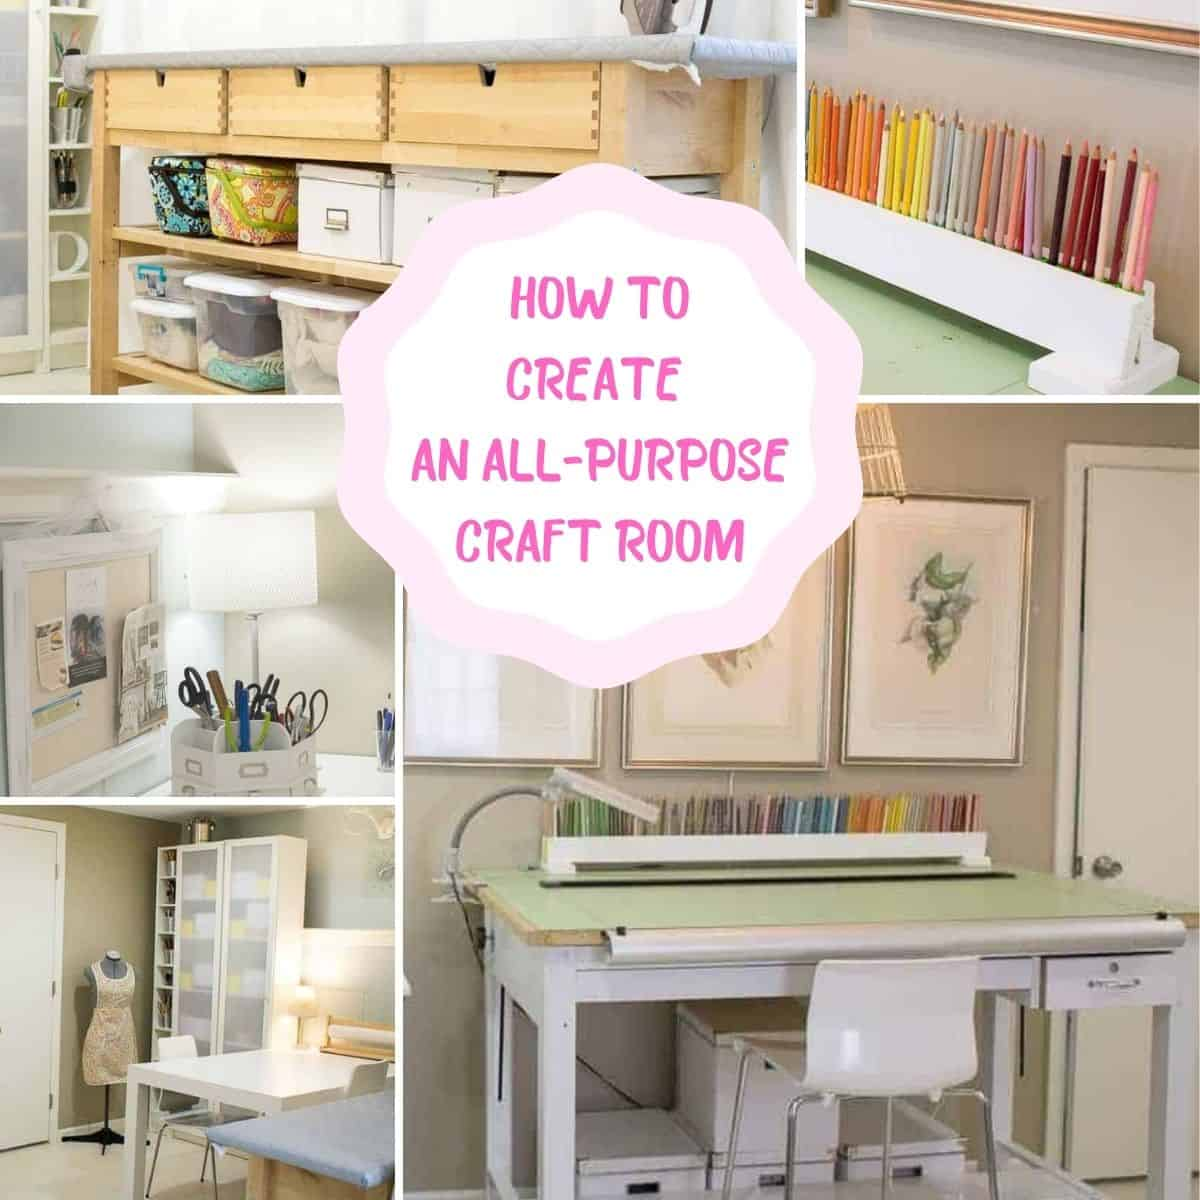 pictures for craft room ideas for how to create an all purpose craft room